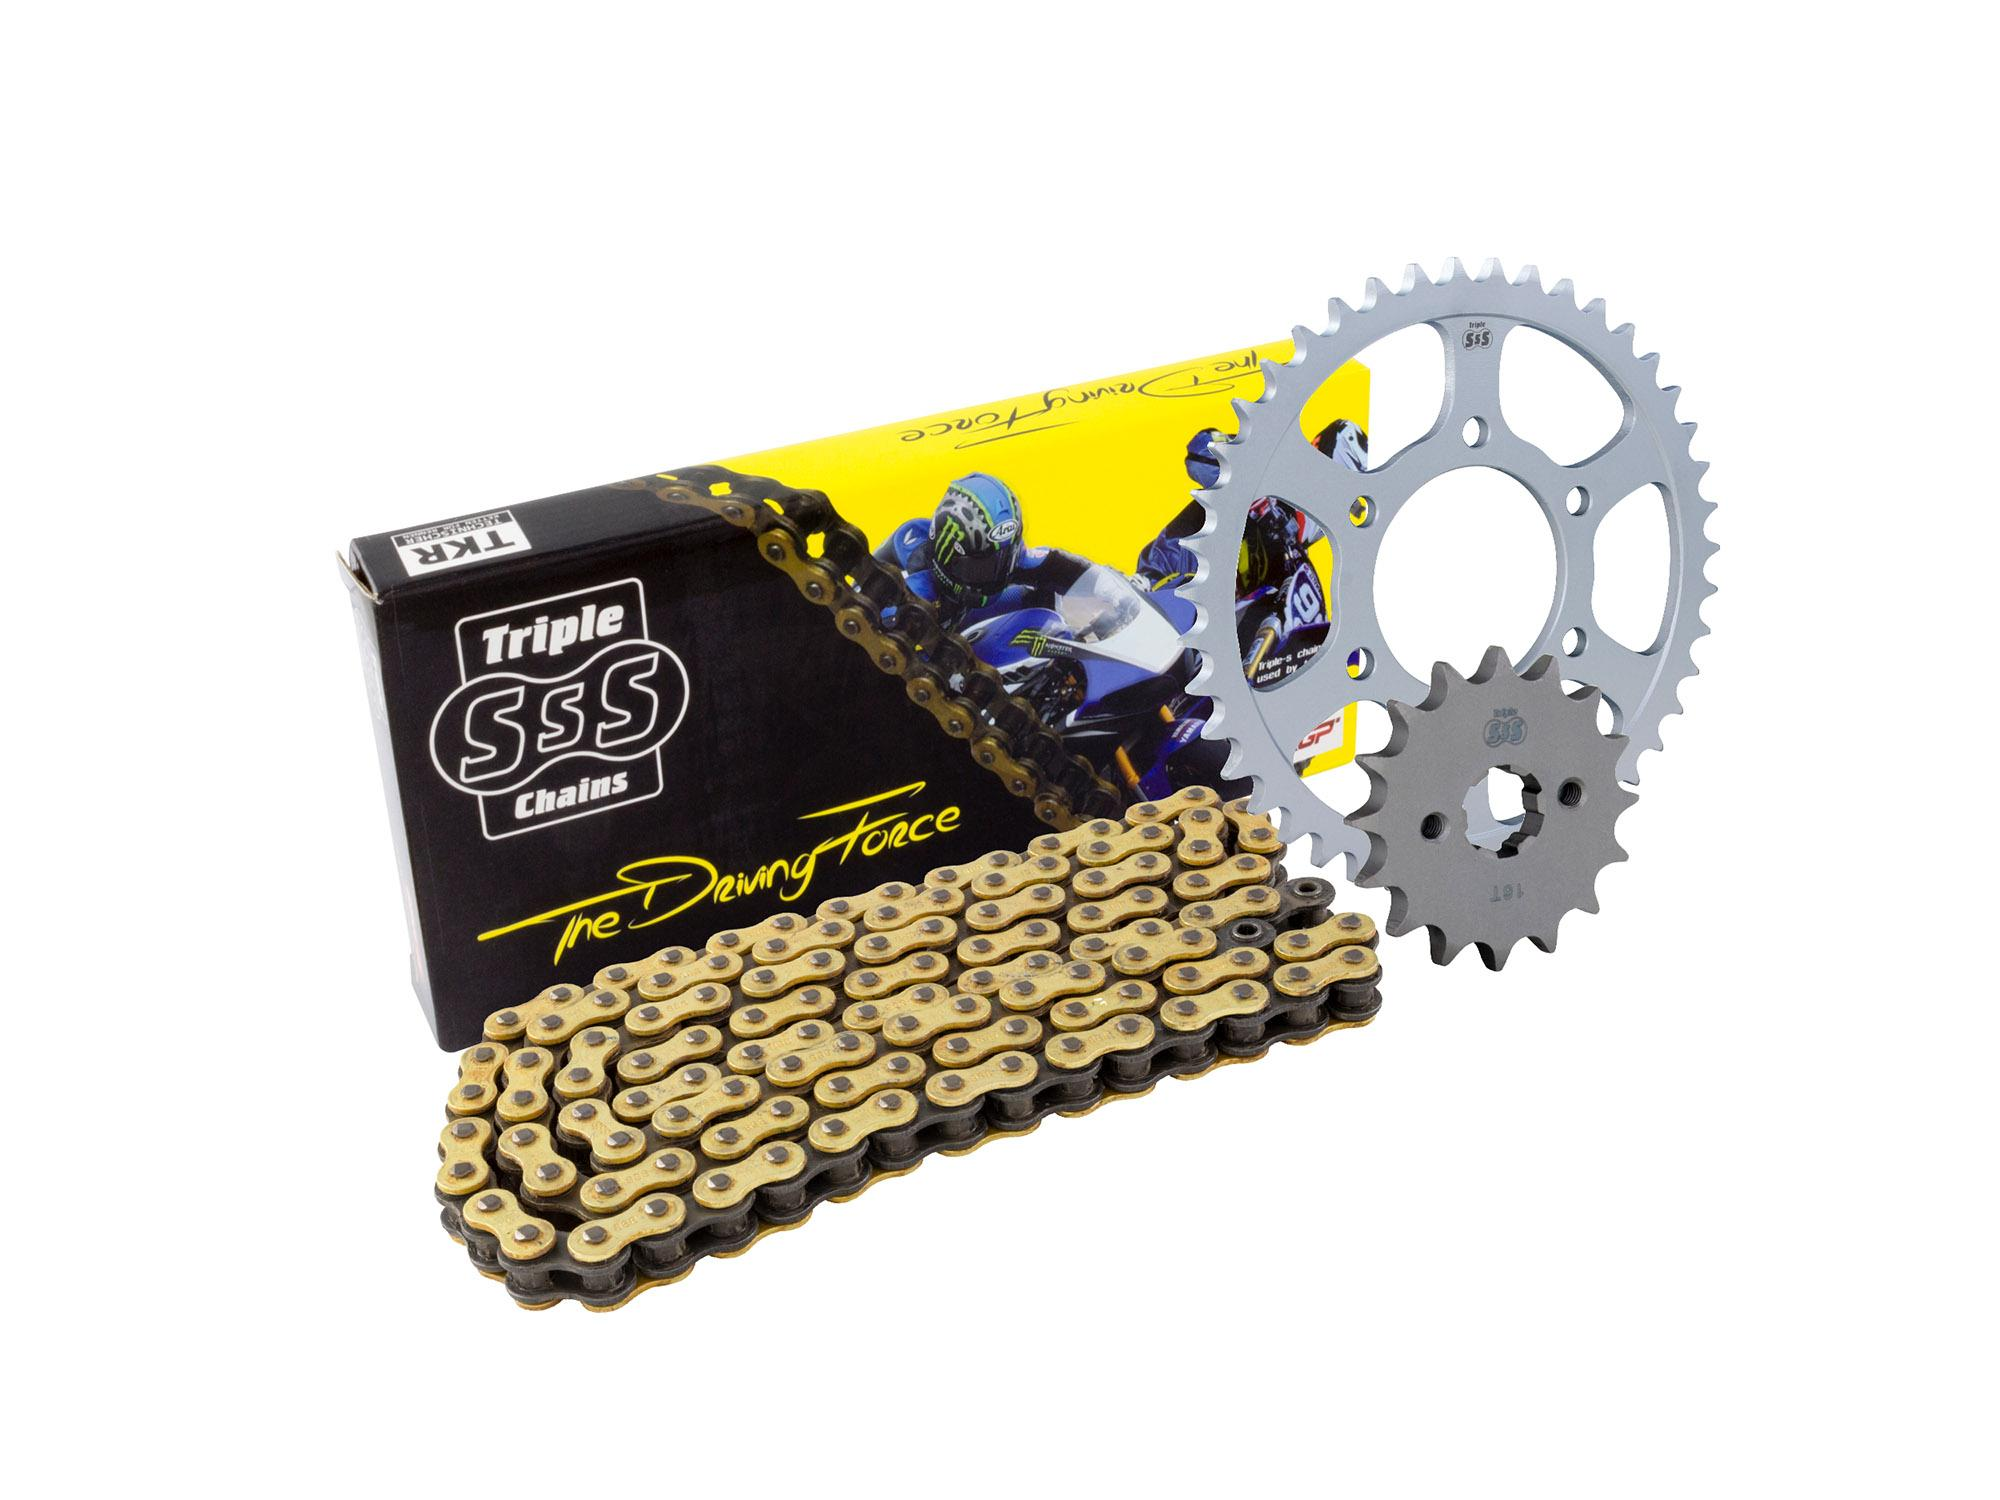 Honda XR650 R Y-6 00-07 Chain & Sprocket Kit: 14T Front, 48T Self-Cleaning Rear, HD O-Ring Gold Chain 525H 110Link